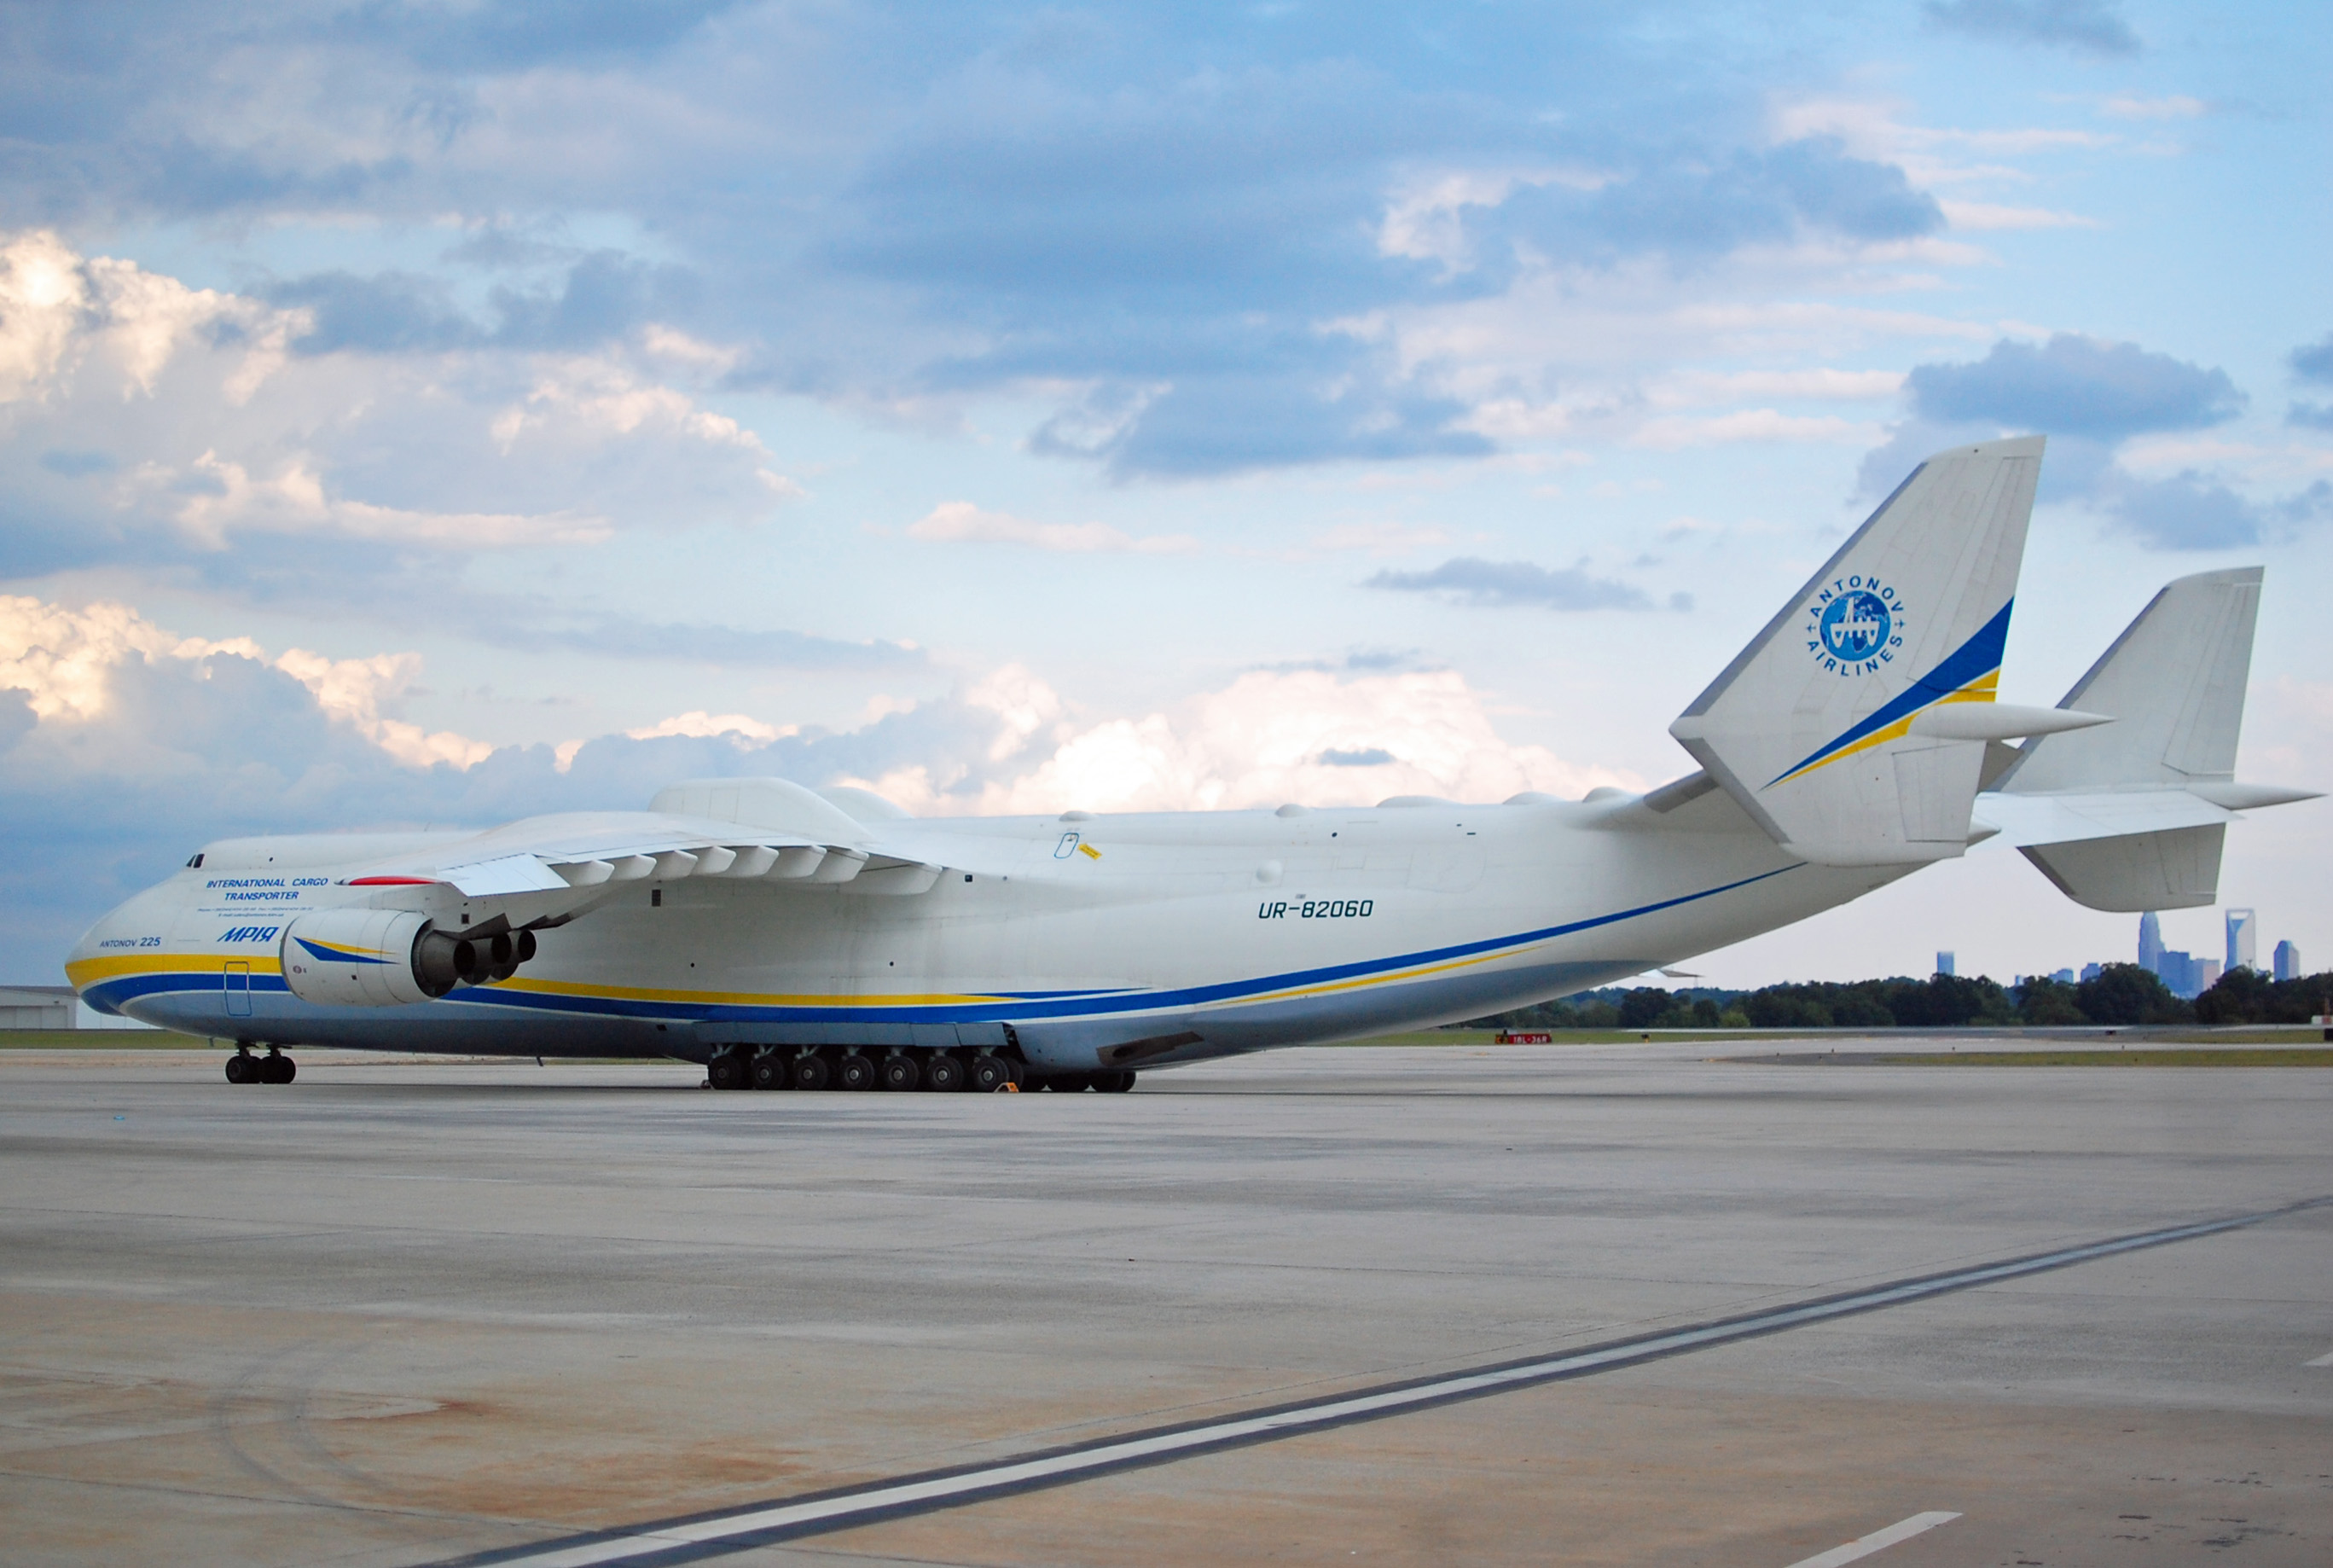 Antonov An-225, the world's largest airplane